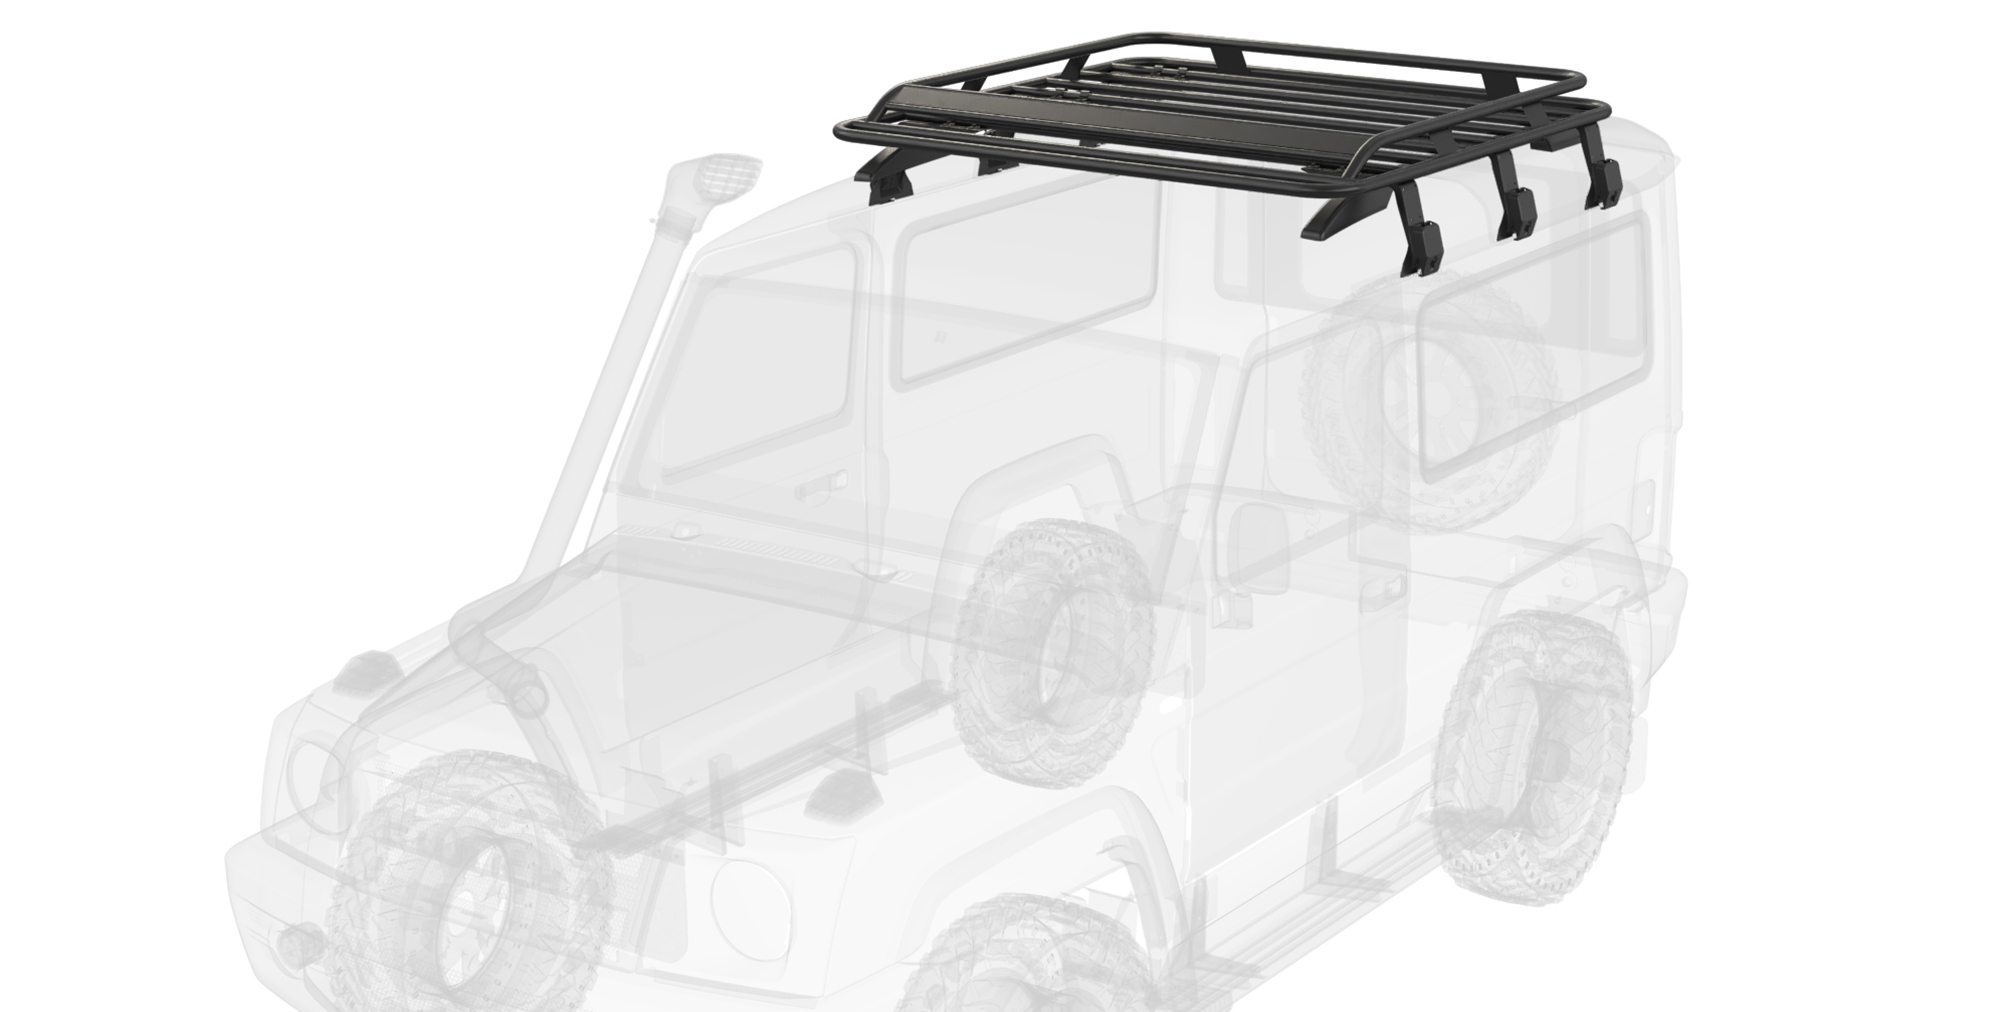 Force Gurkha 2021 4x4x4 off road car with Roof Carrier